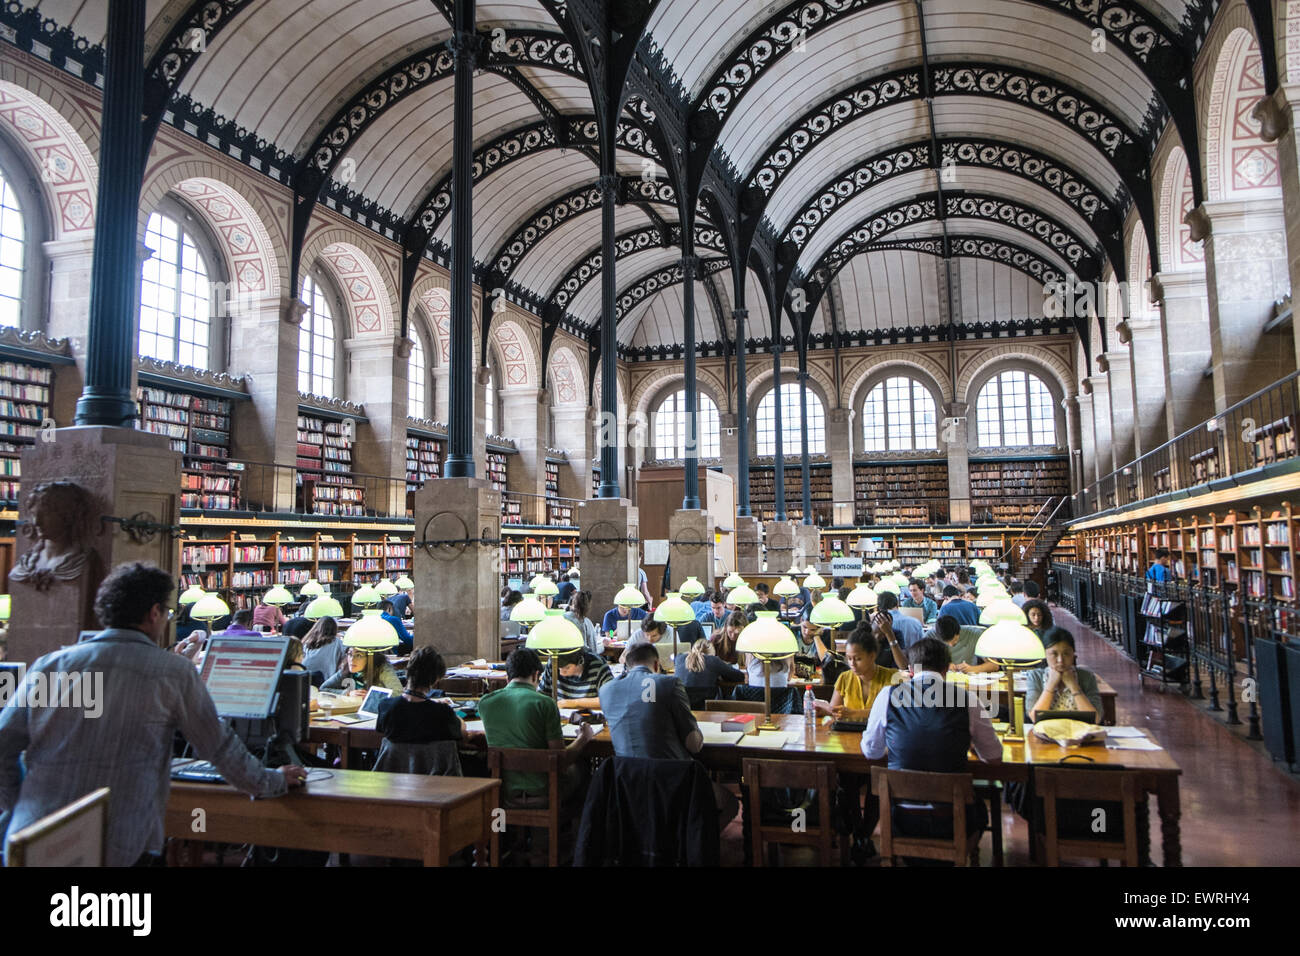 Bibliotheque Sainte Genevieve - public library in the Latin Quarter, Paris France - Stock Image